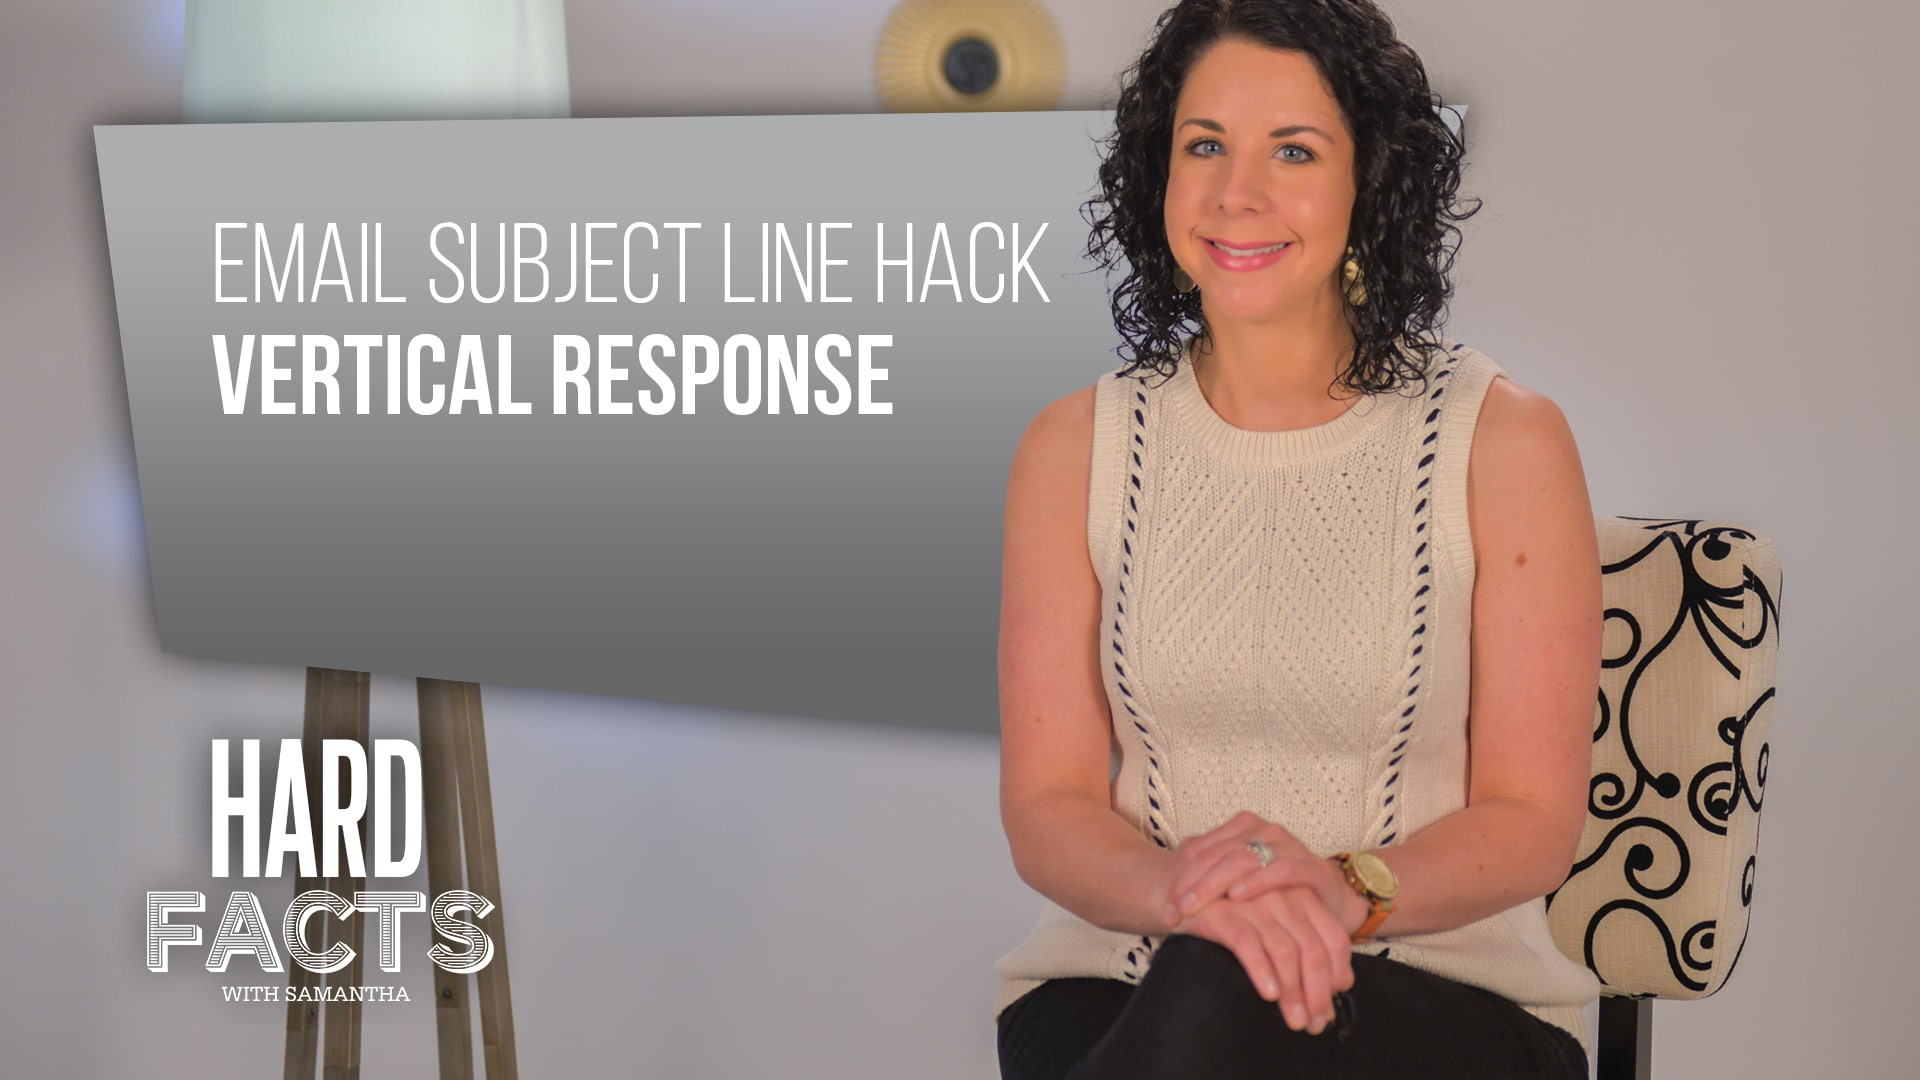 Email Subject Line Hack – Vertical Response